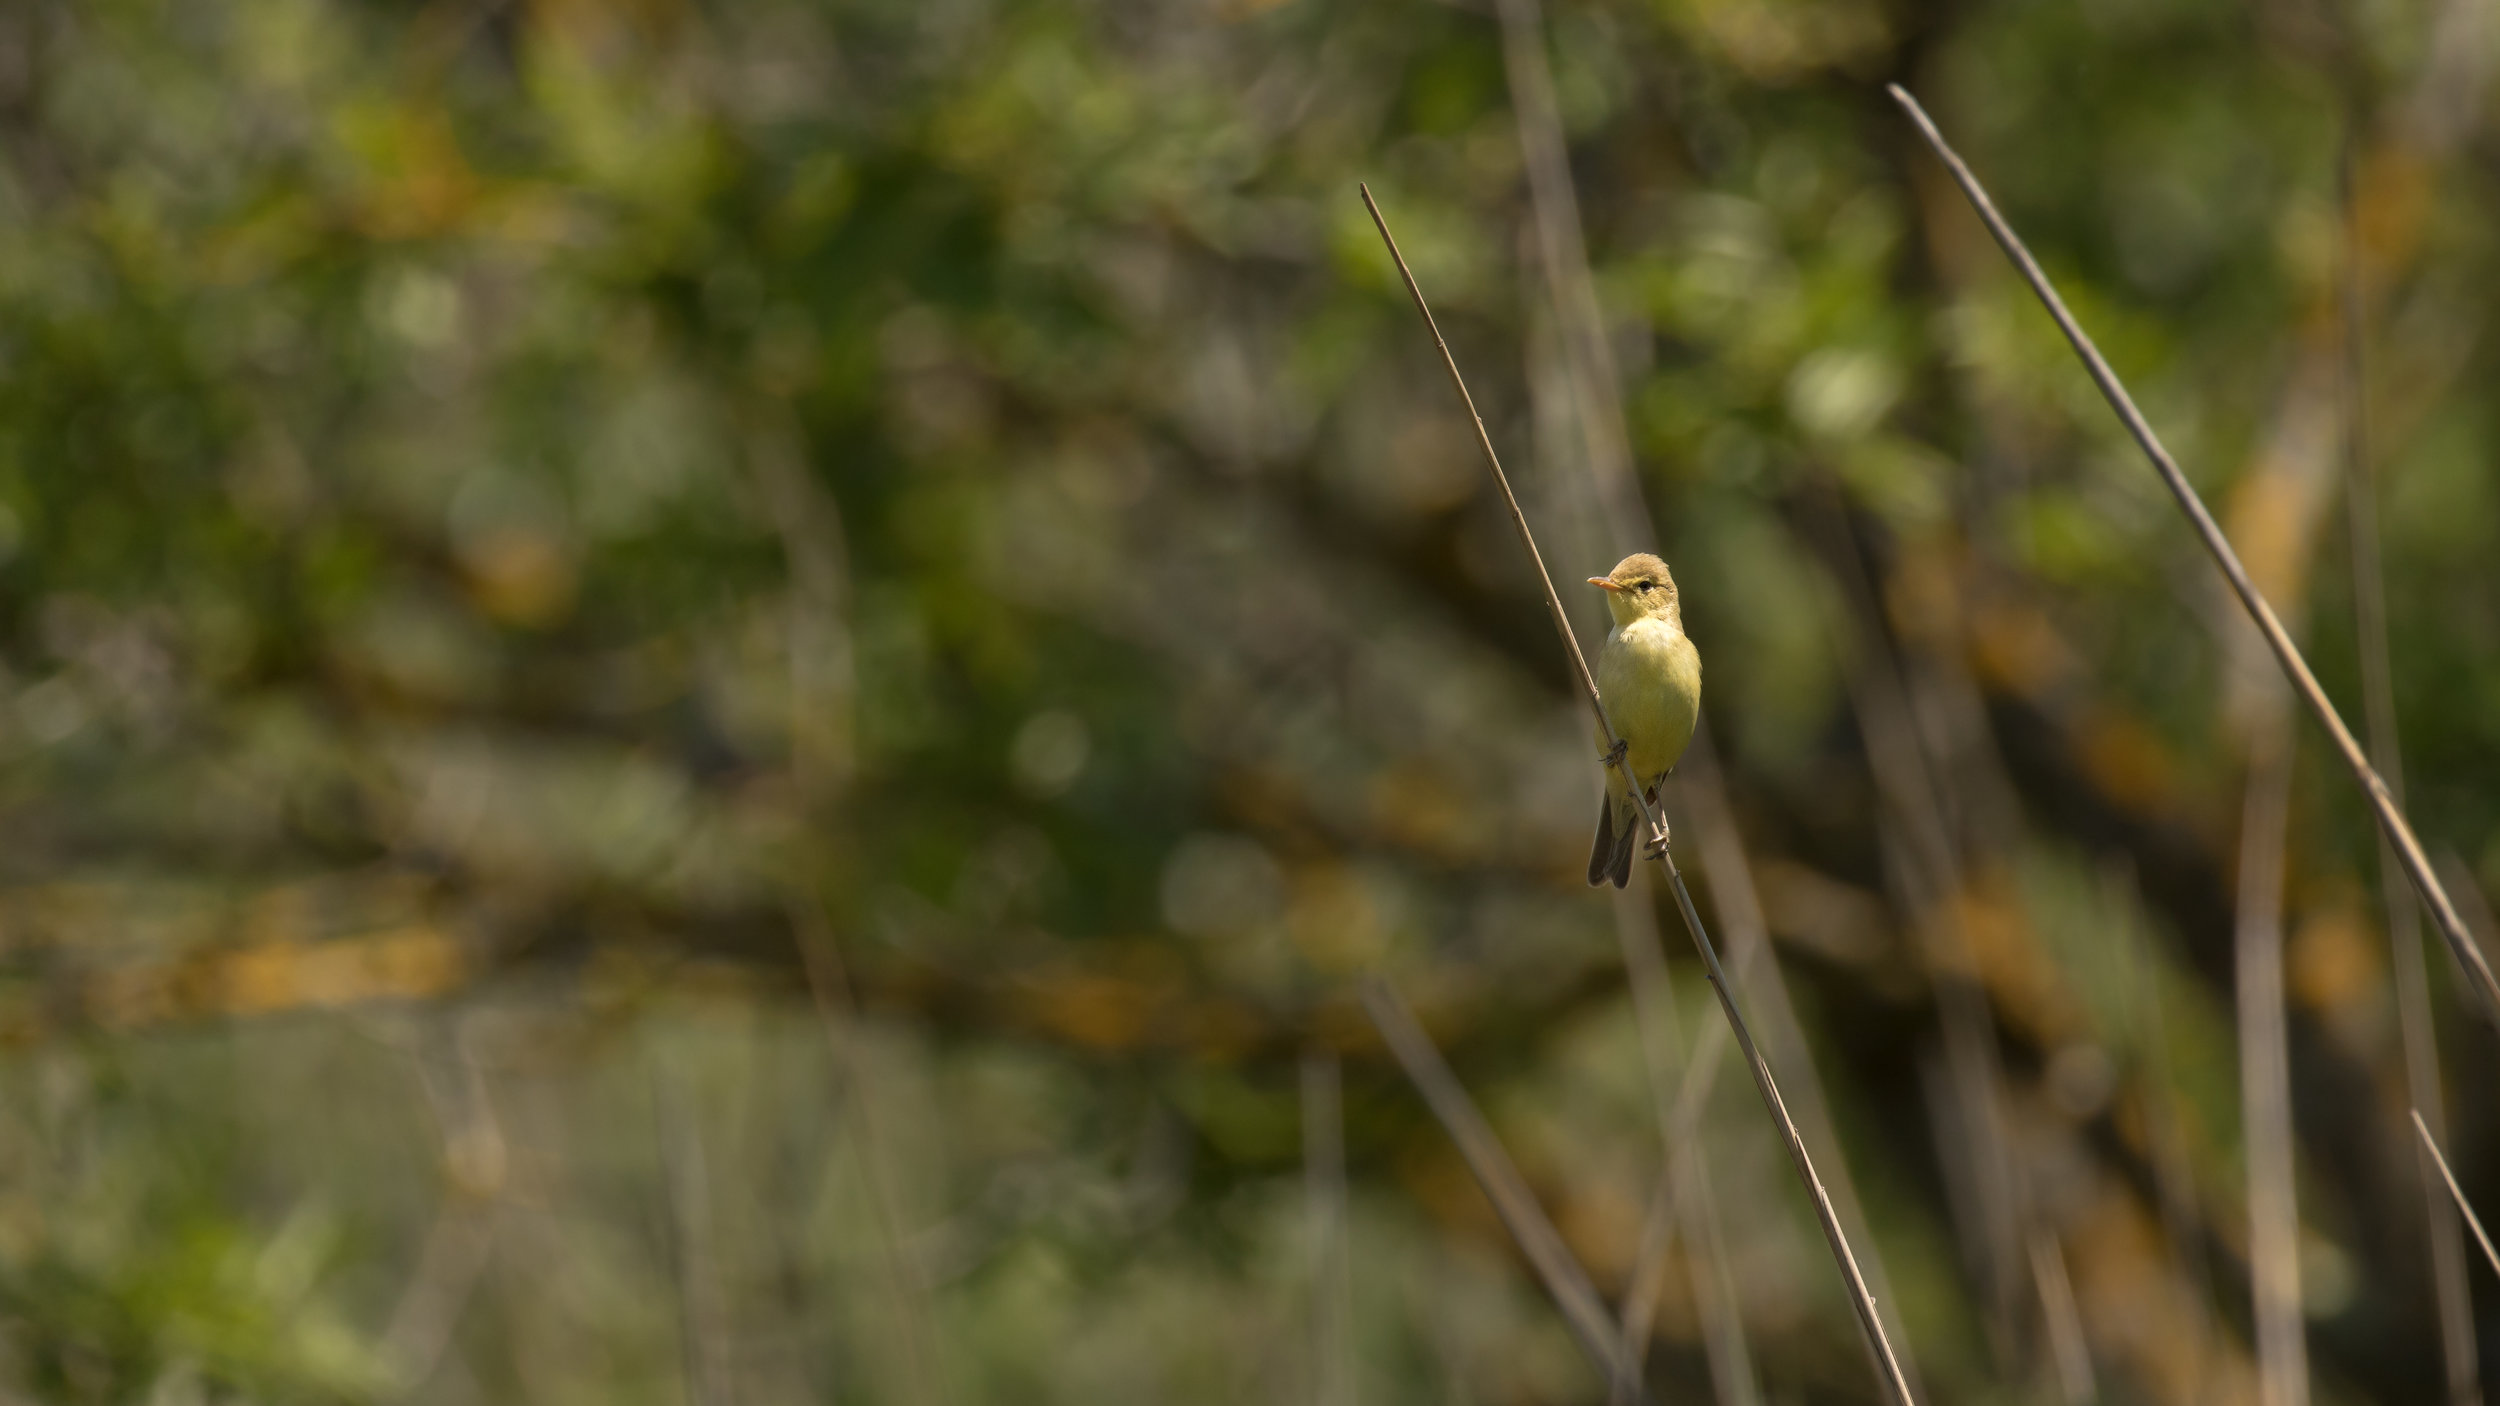 Melodious Warbler (Hippolais polyglotta) in Camargue, France. May 2018. Not baited. Not called in.